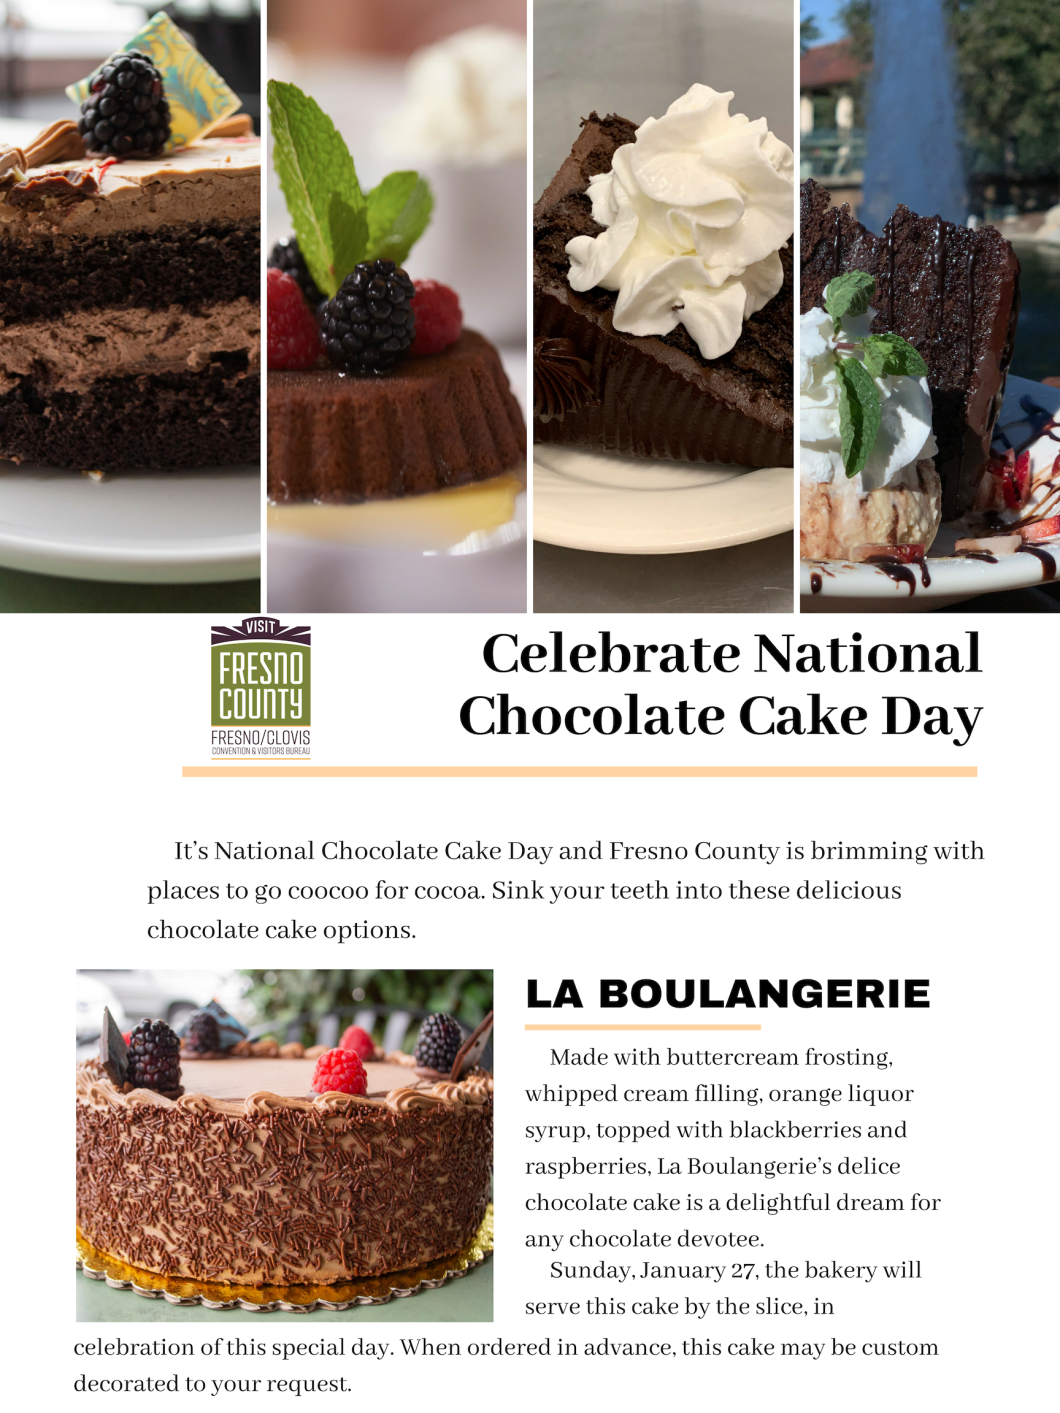 Where To Celebrate National Chocolate Cake Day In Fresno County Jan 27 National Chocolate Cake Day Chocolate Cake Cake Day